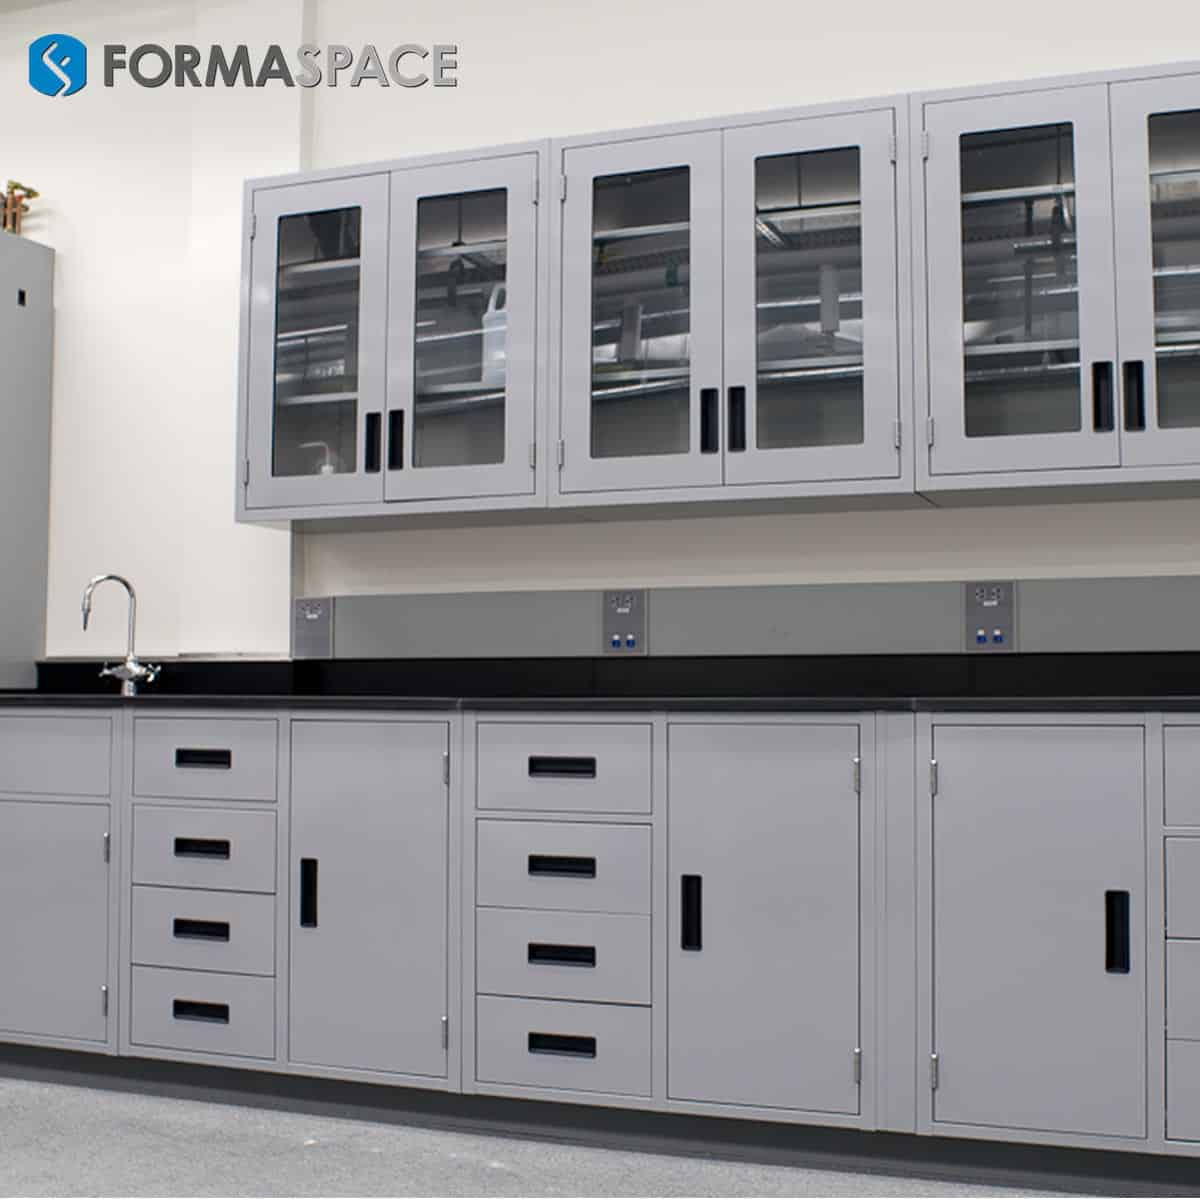 epoxy lab casework with glass cabinets